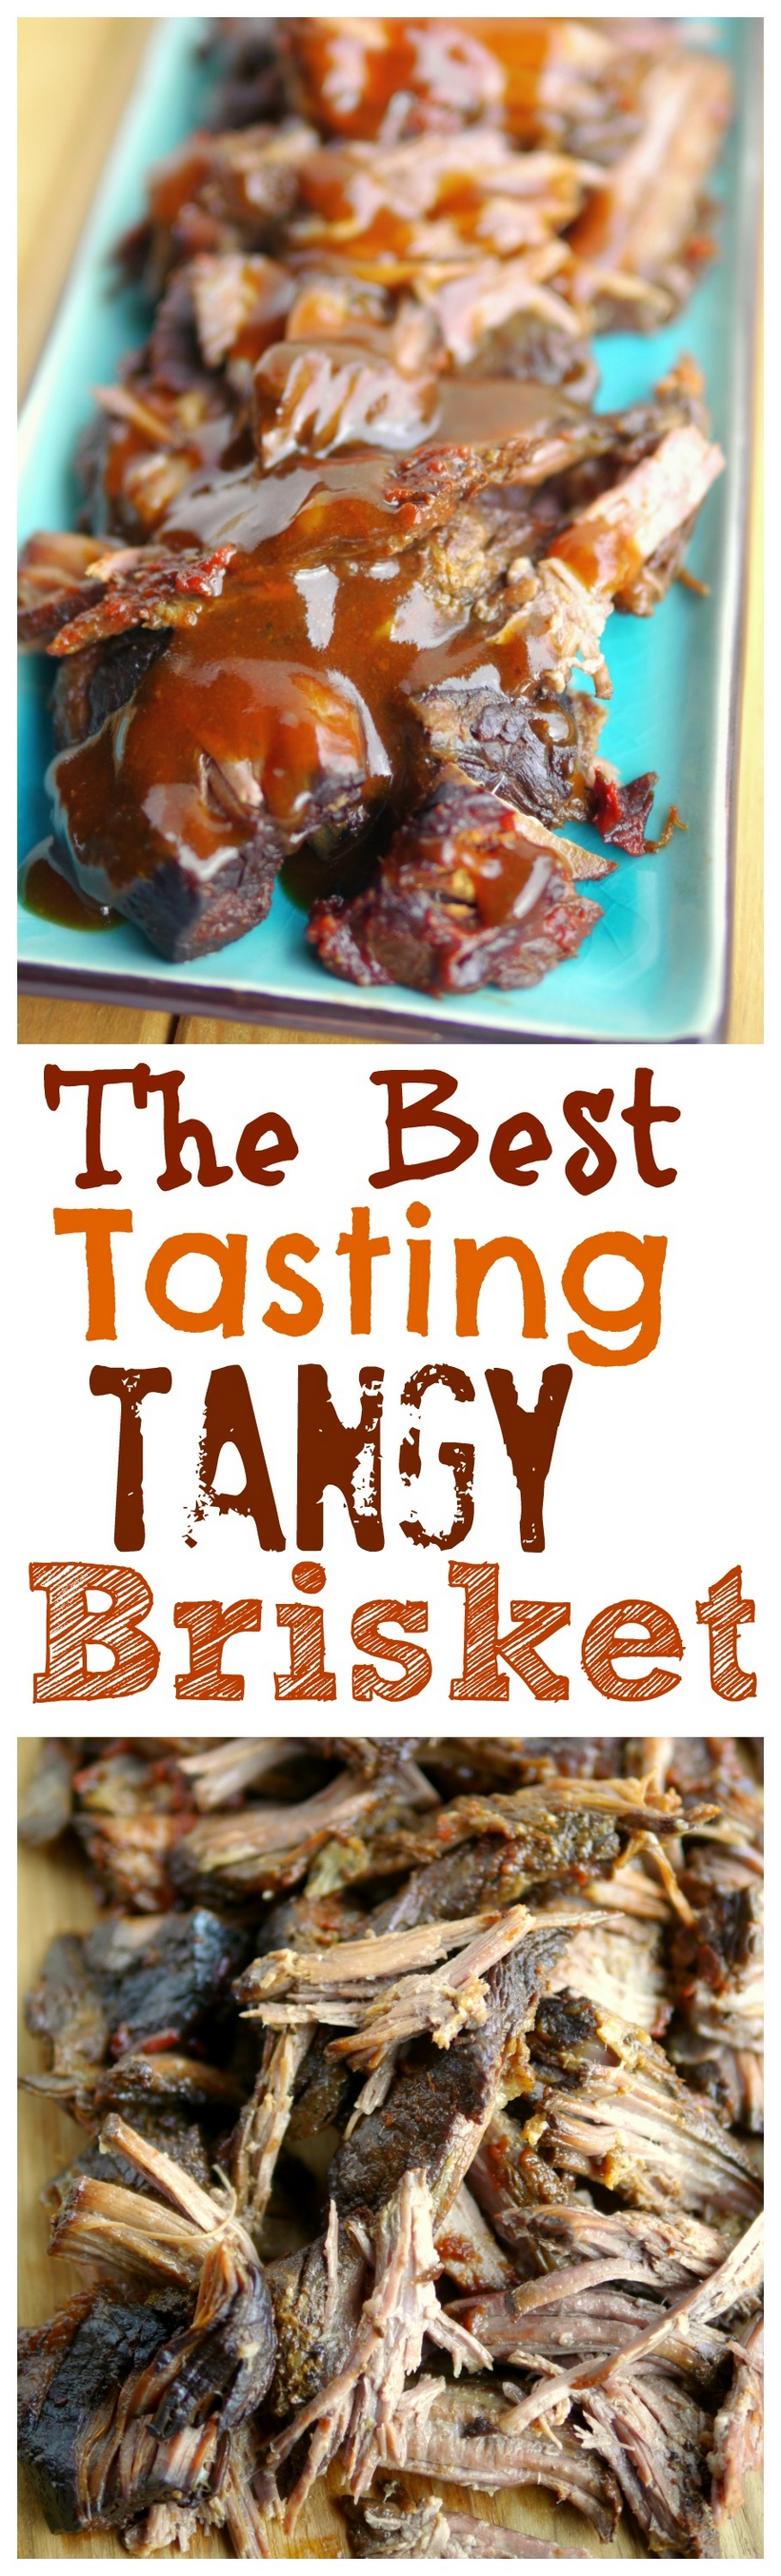 VIDEO + RECIPE: The Best Tasting Slow Cooker Tangy Brisket Recipe will become a family favorite for years to come. The fork-tender, melt in your mouth meat and mouthwatering sauce are a true example of what brisket is supposed to taste like. #noblepig #slowcooker #slowcookerbrisket #beef #easydinners